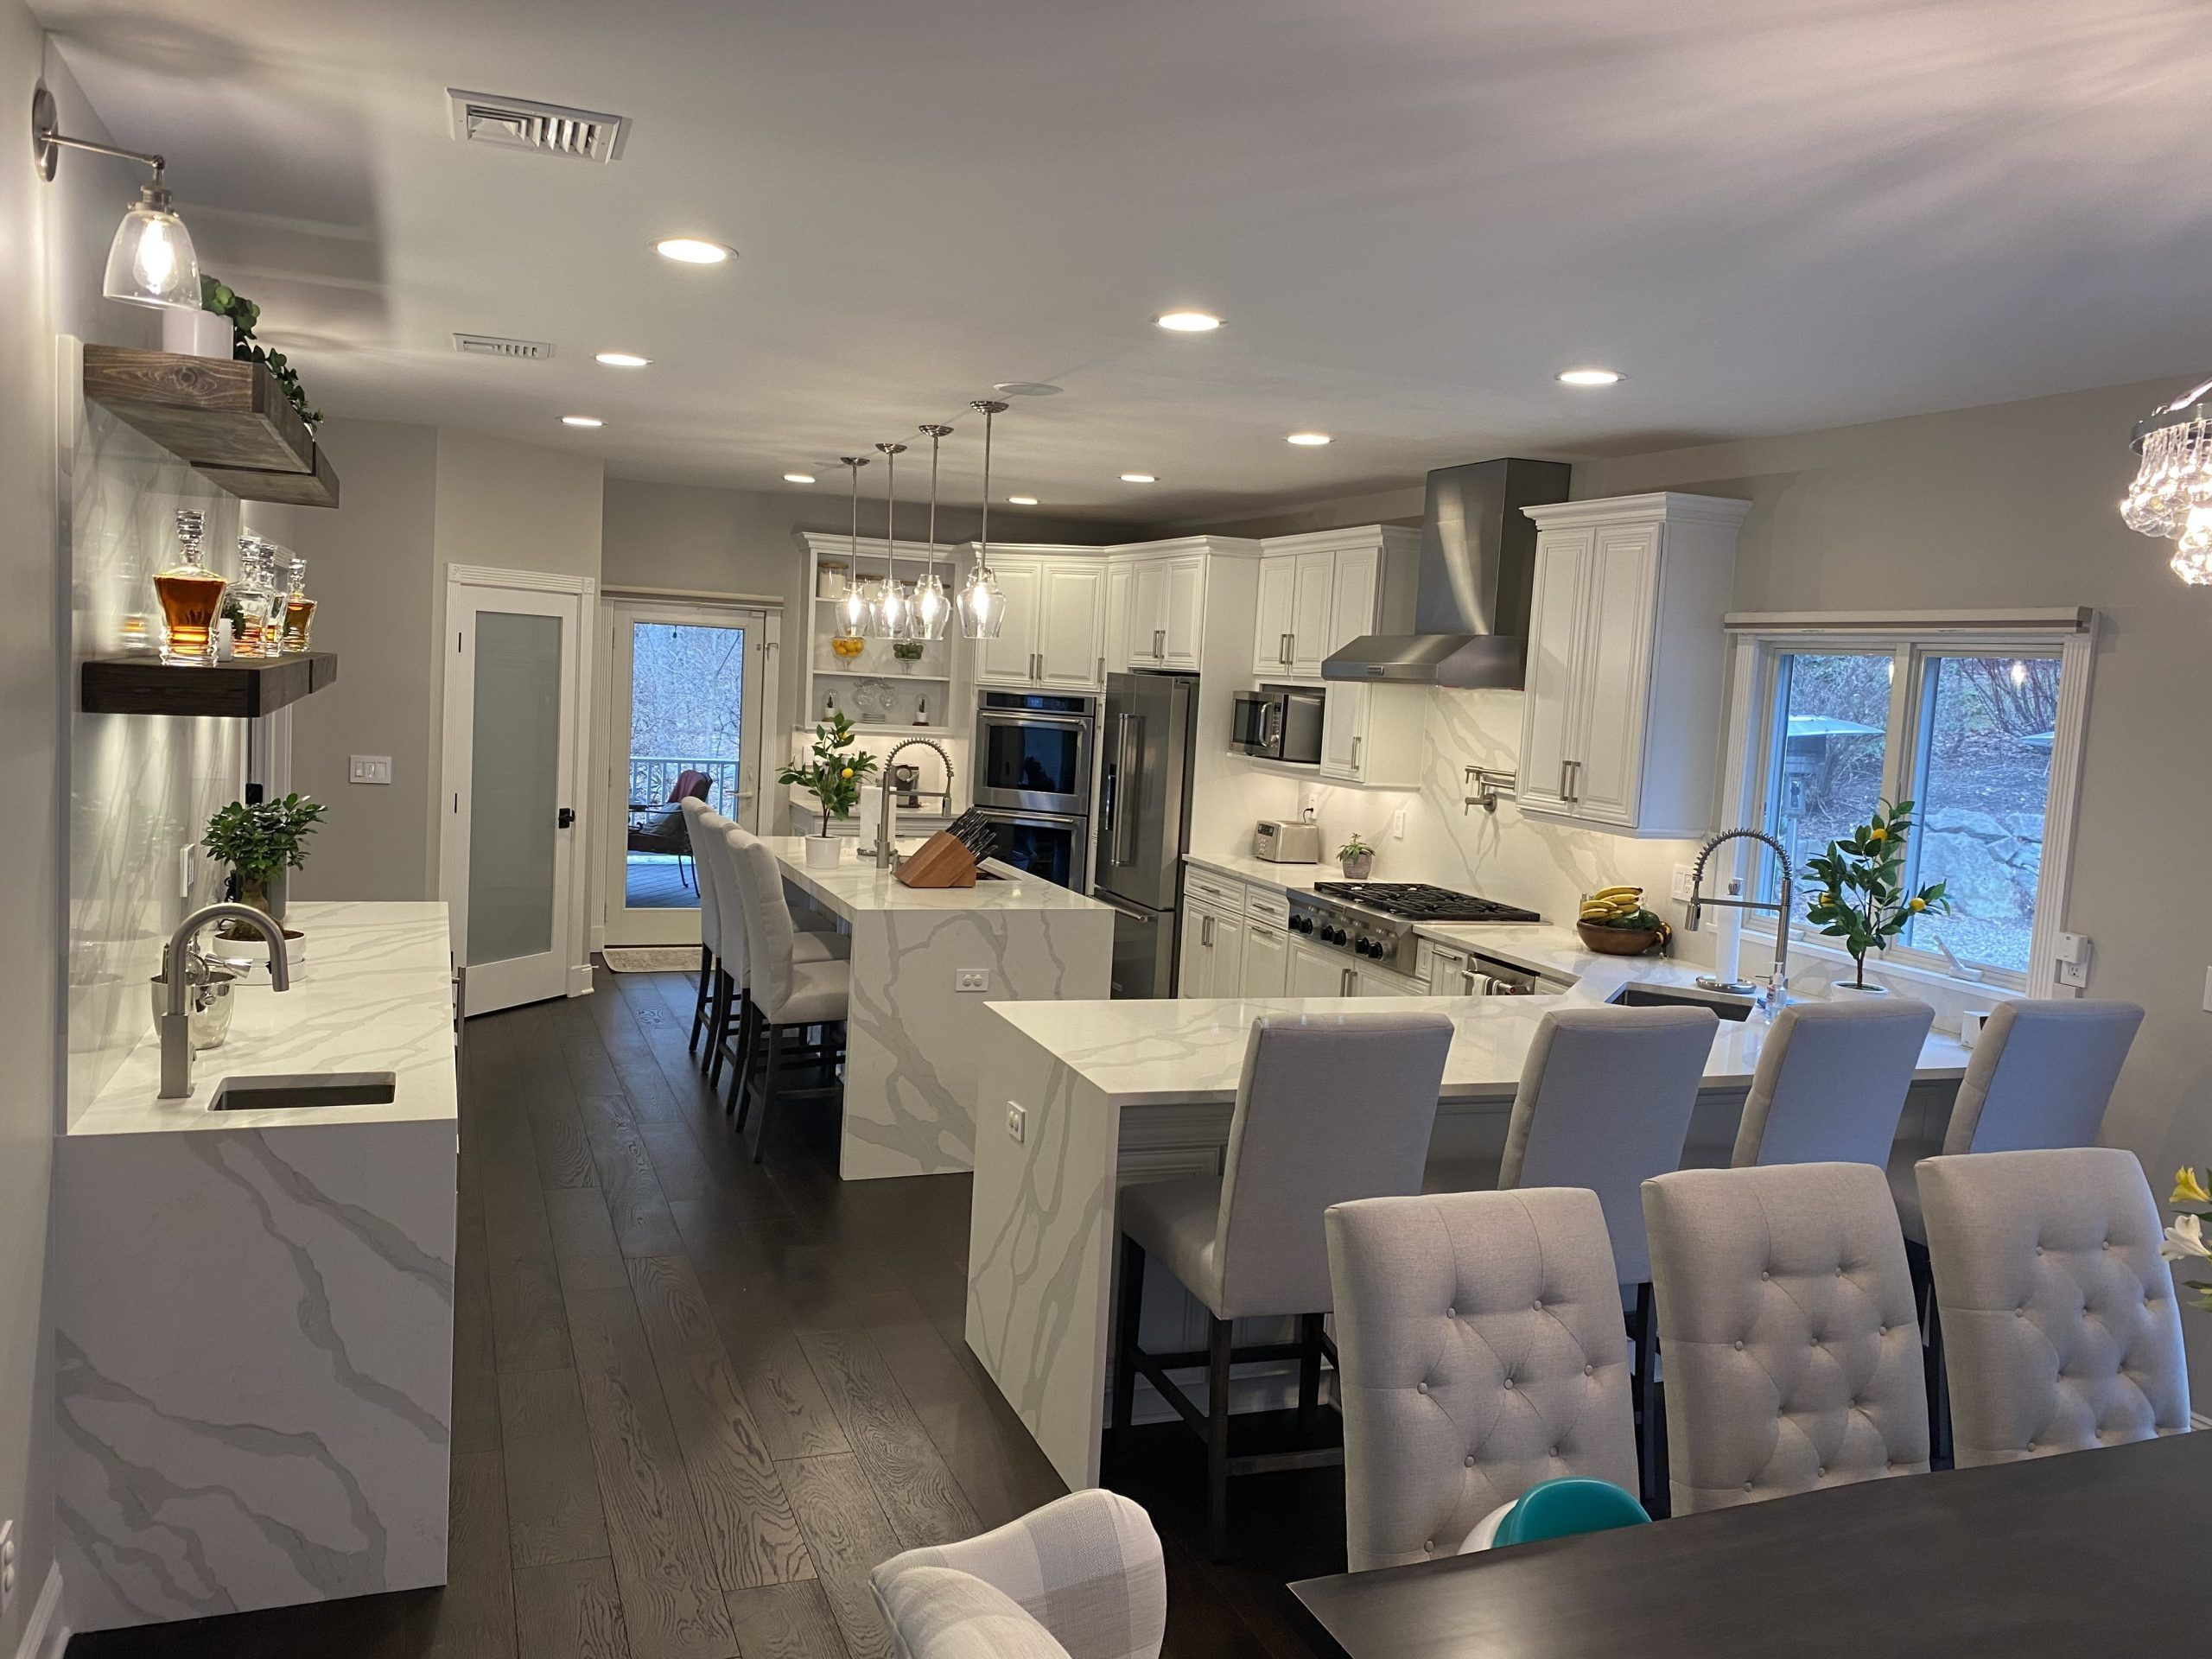 Have You Seen This Gorgeous Kitchen Space In Ringwood Nj Yet We Are So Happy And Kitchen Cabinets And Countertops Free Kitchen Design Kitchen And Bath Design